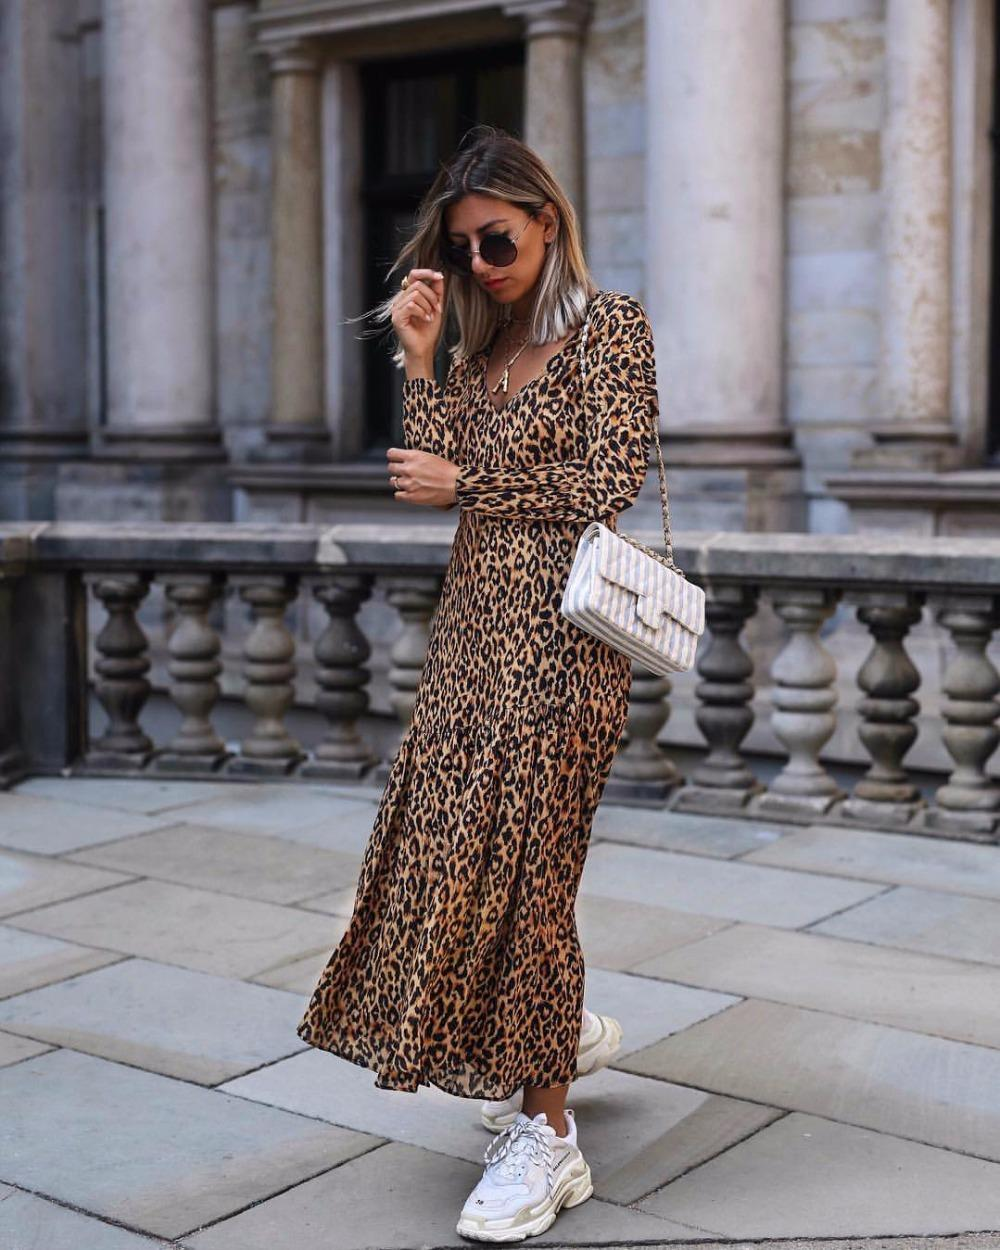 6cebff0351 Womens Leopard Print Maxi Dress Ladies Holiday Long Sleeve Fashion Dress  Casual Fashion Straight Casual Dress Green Dress Party Pink And White  Dresses For ...